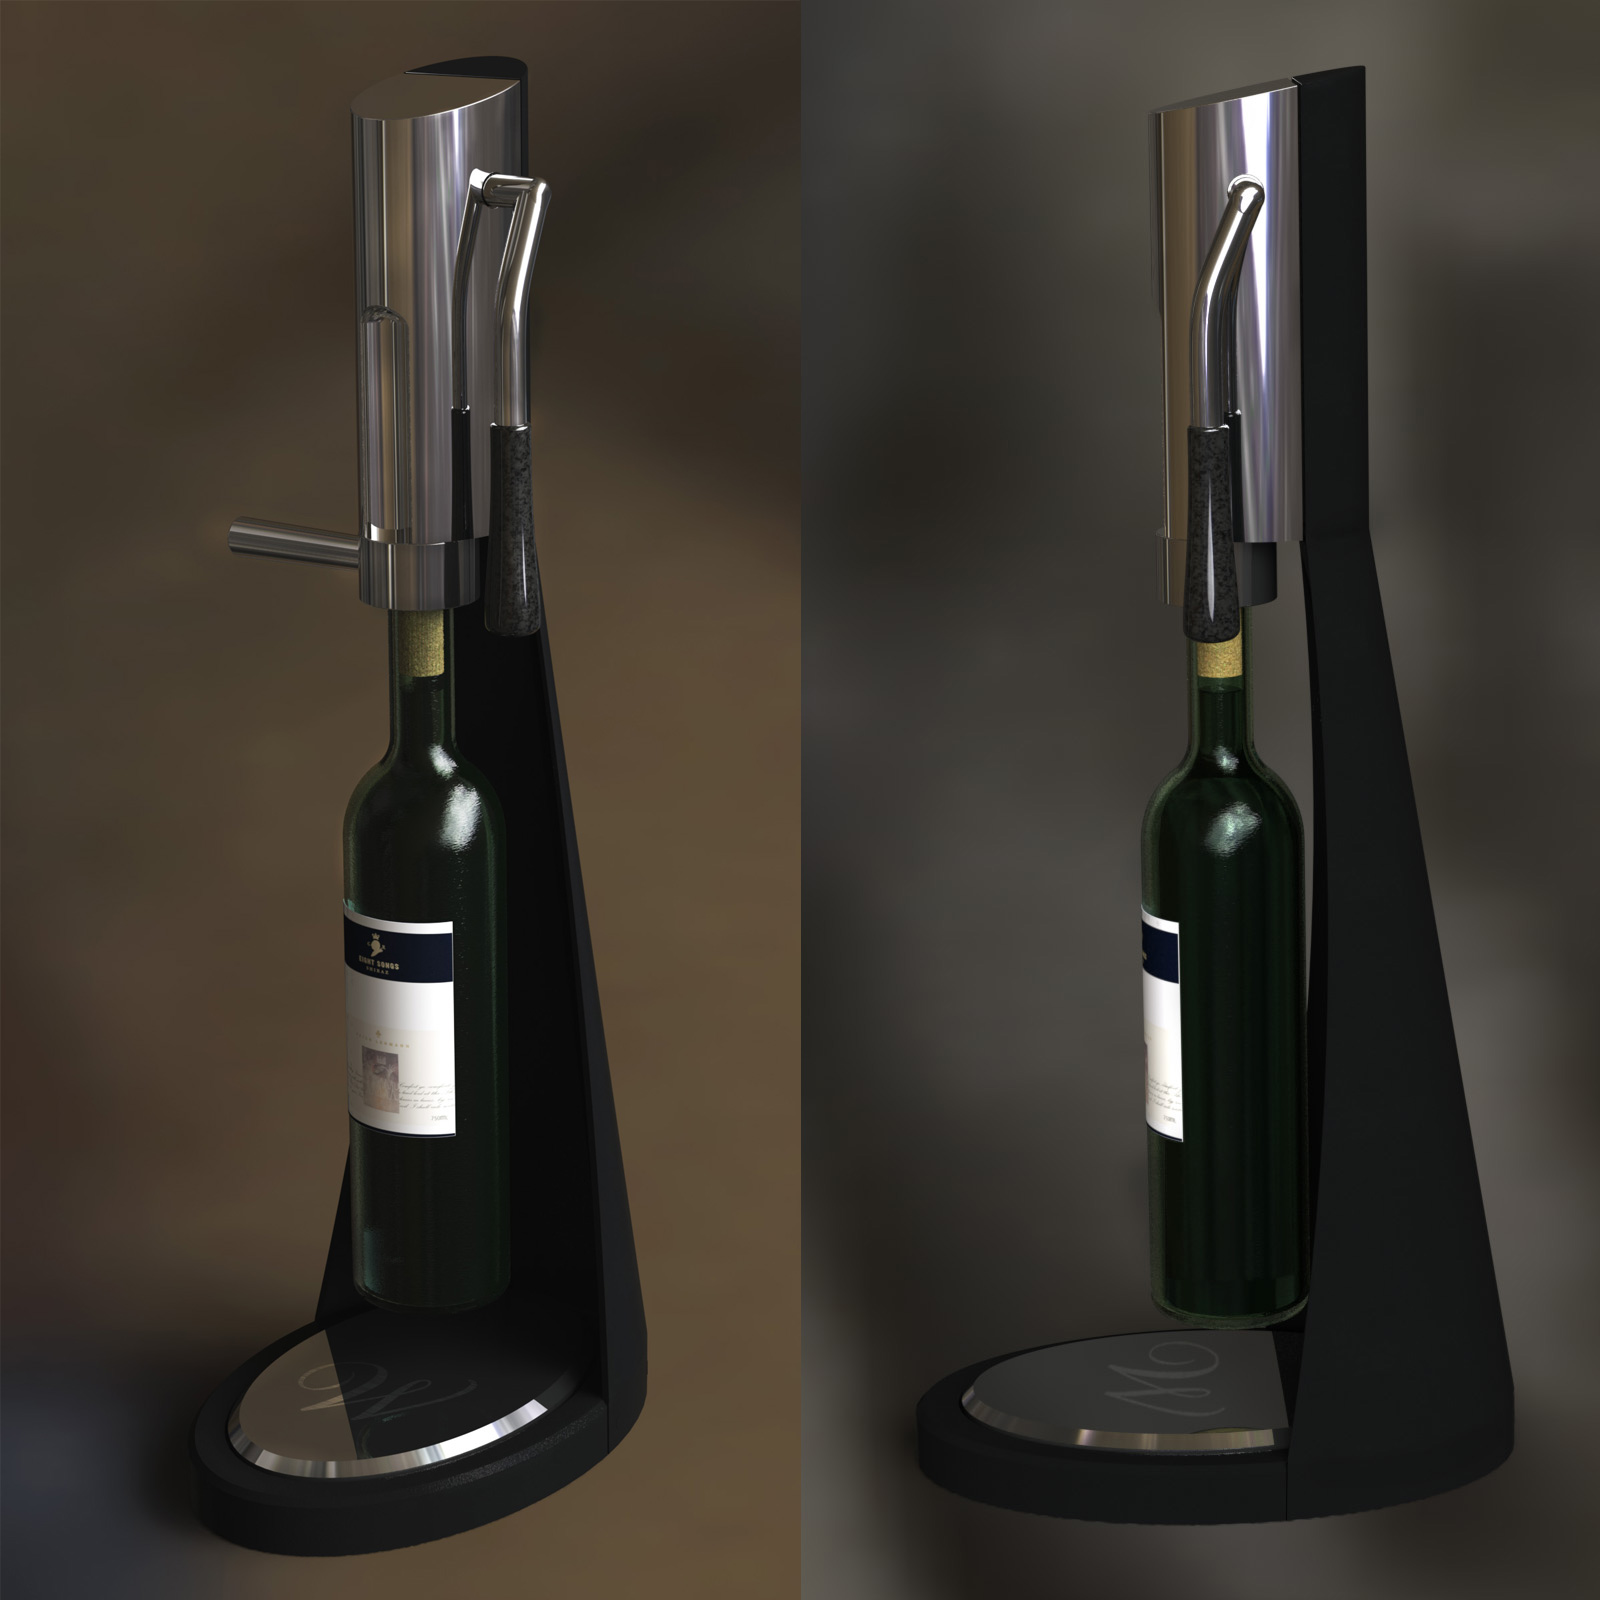 Pre-production renders in Photoview, using the Solidworks models I built for manufacturing.